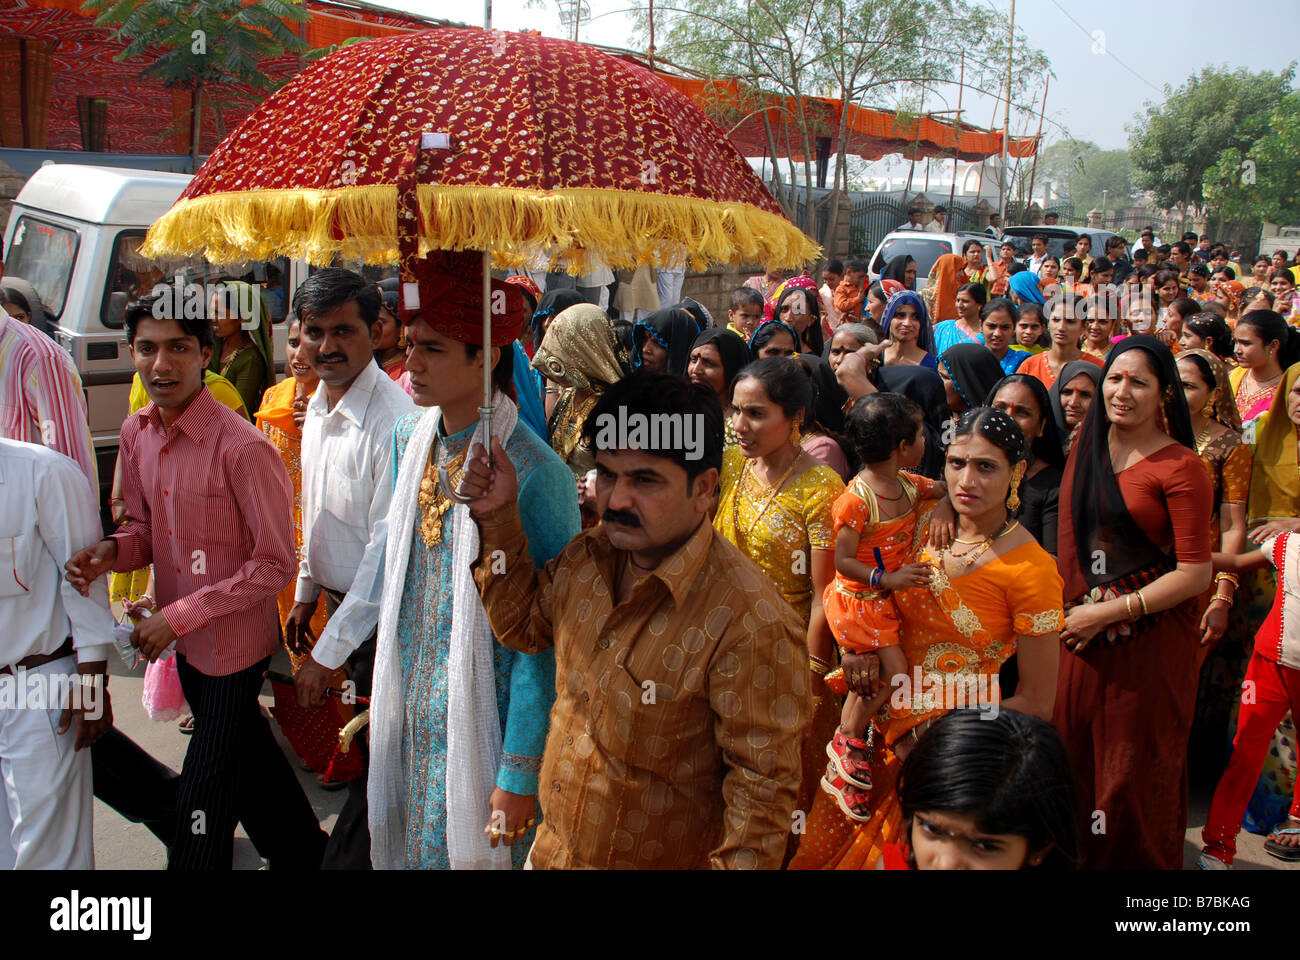 The groom being led in procession to his wedding ceremony, Ahmedabad, India. - Stock Image